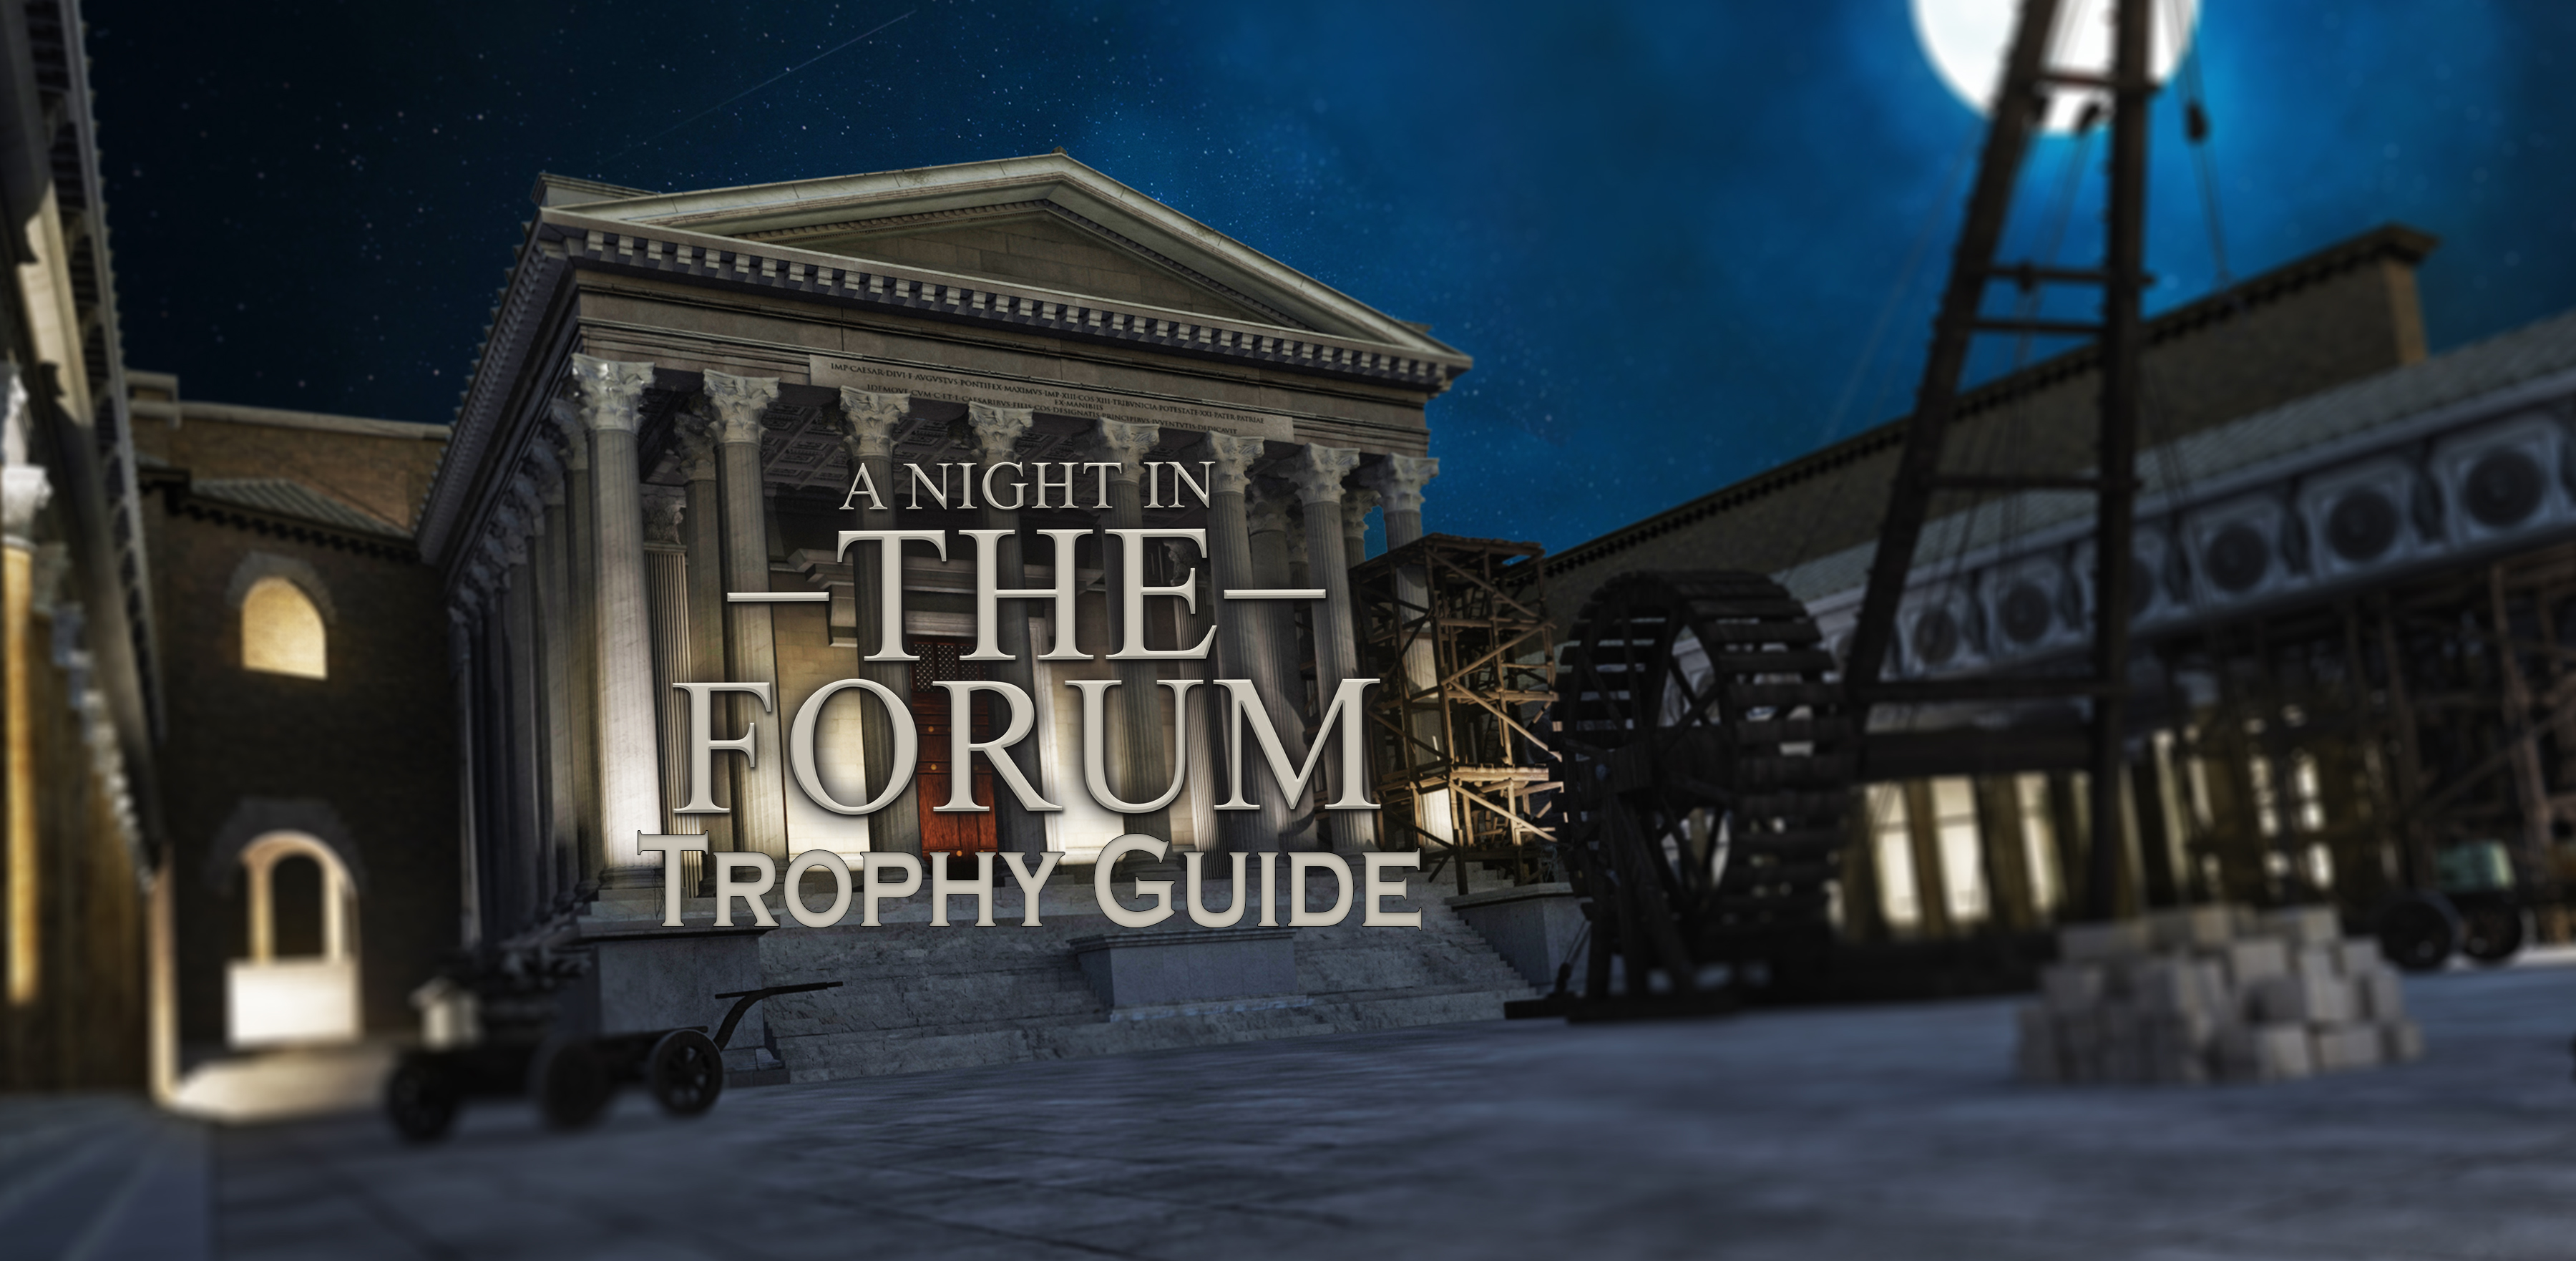 A Night in the Forum Trophy Guide